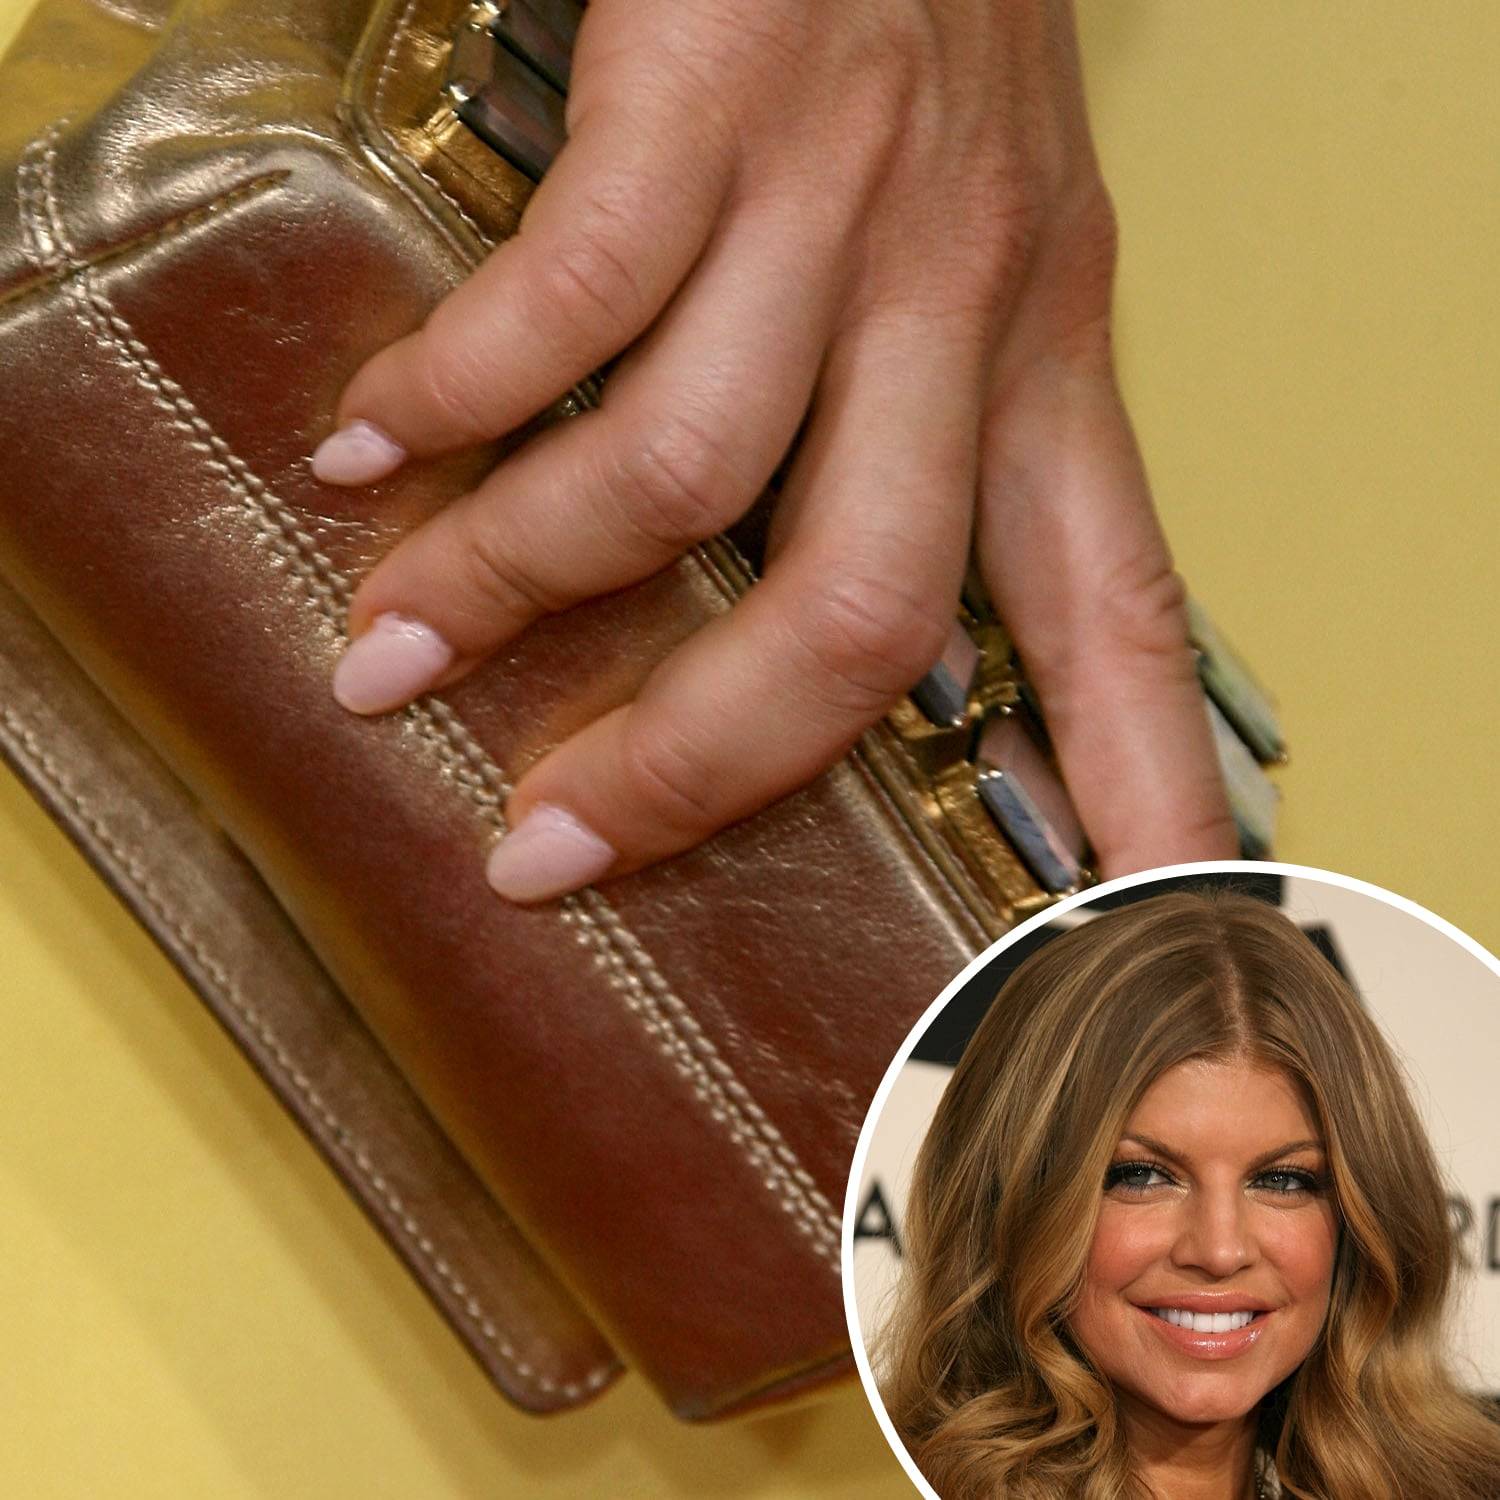 With a makeup palette and ensemble filled with warm yellows and golds, Fergie opted for a cool pastel pink shade at the 2008 Grammy Awards.